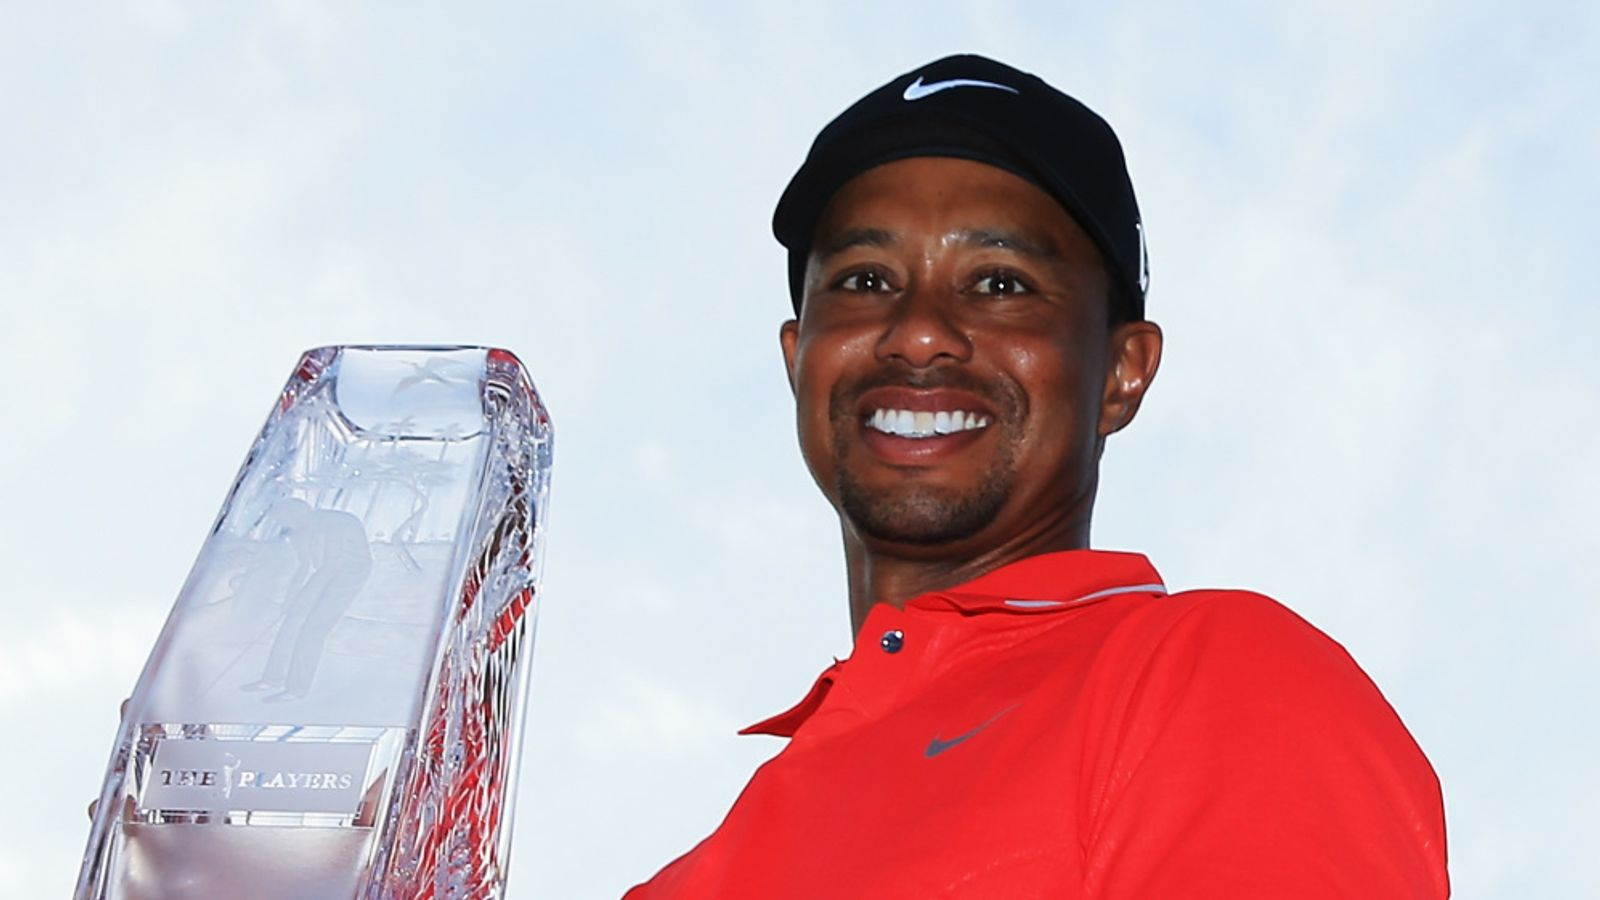 Tiger Woods takeover: Highlights of his greatest wins on Sky Sports